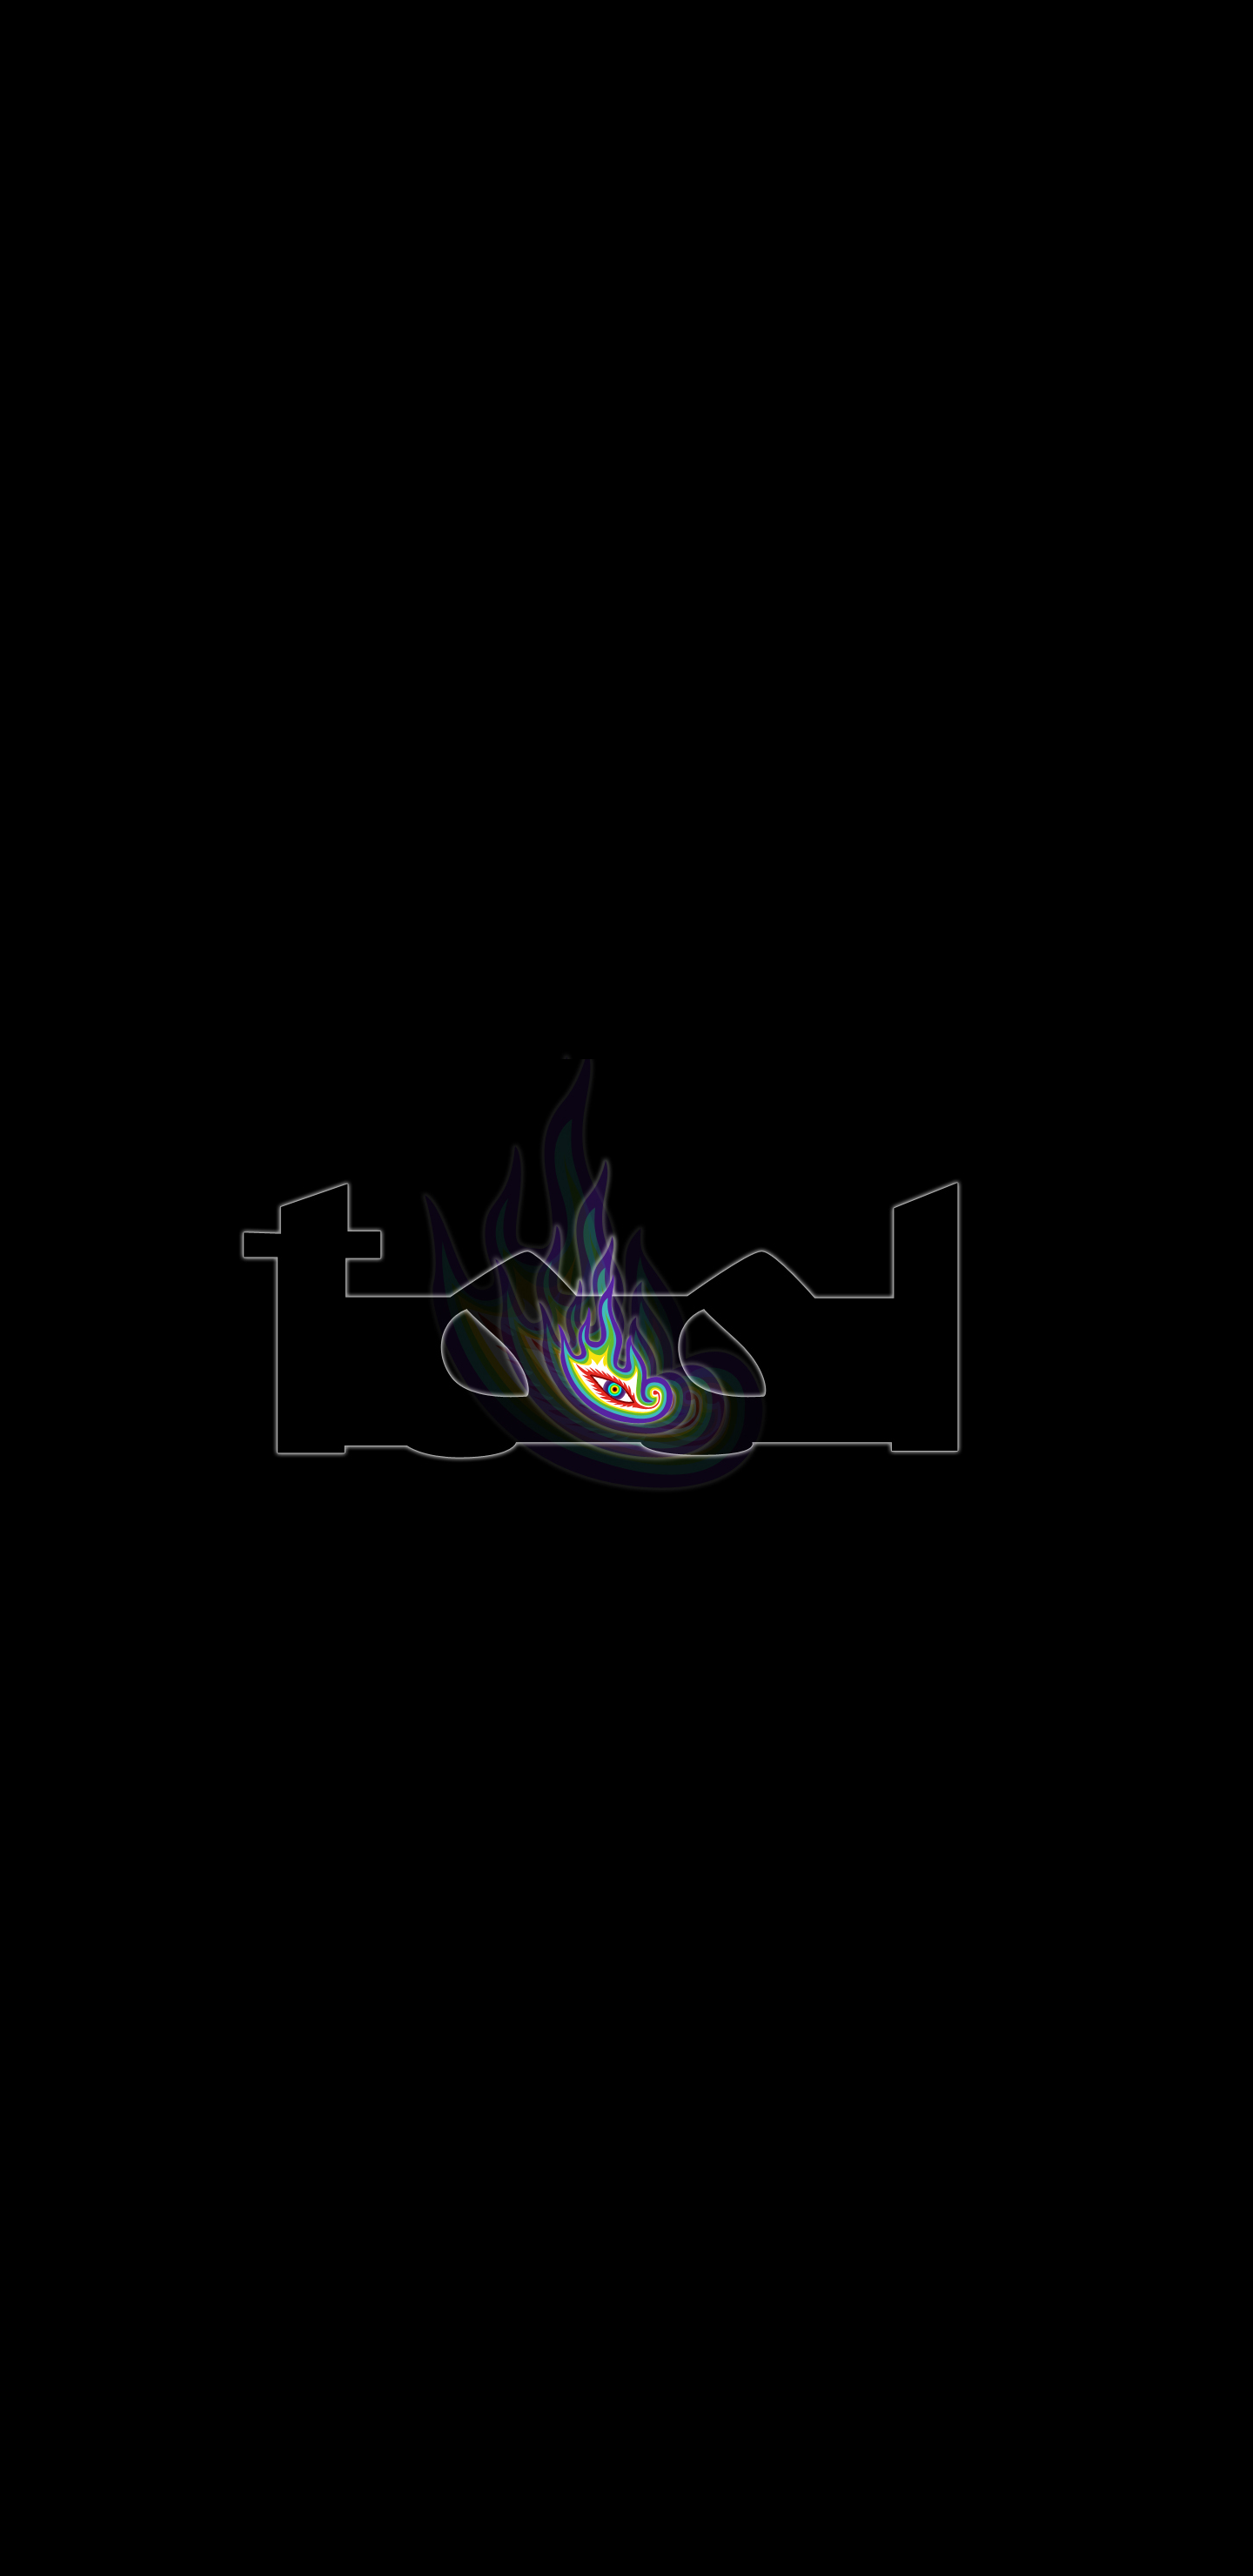 Tool Aenima Wallpaper Posted By John Anderson